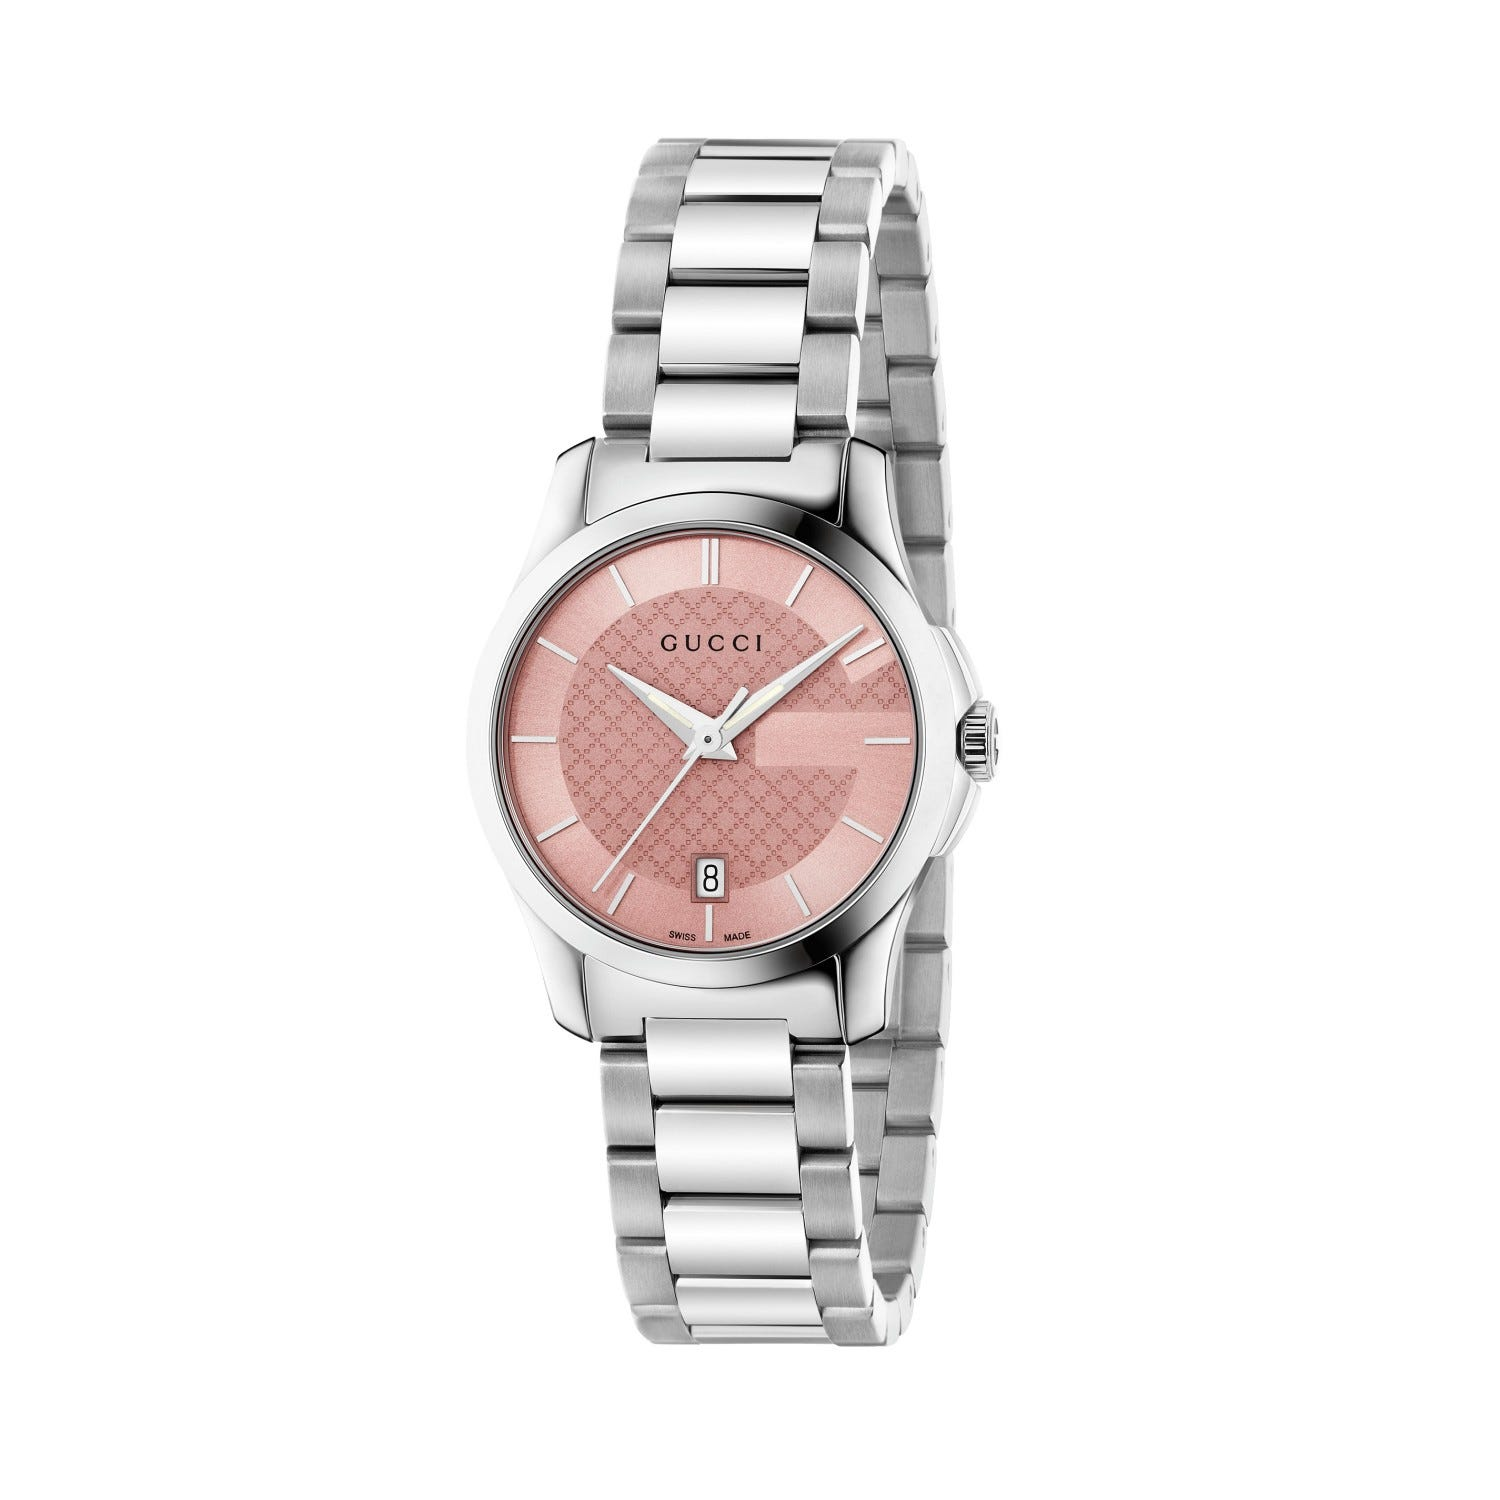 Gucci G-Timeless ladies' pink dial stainless steel bracelet watch